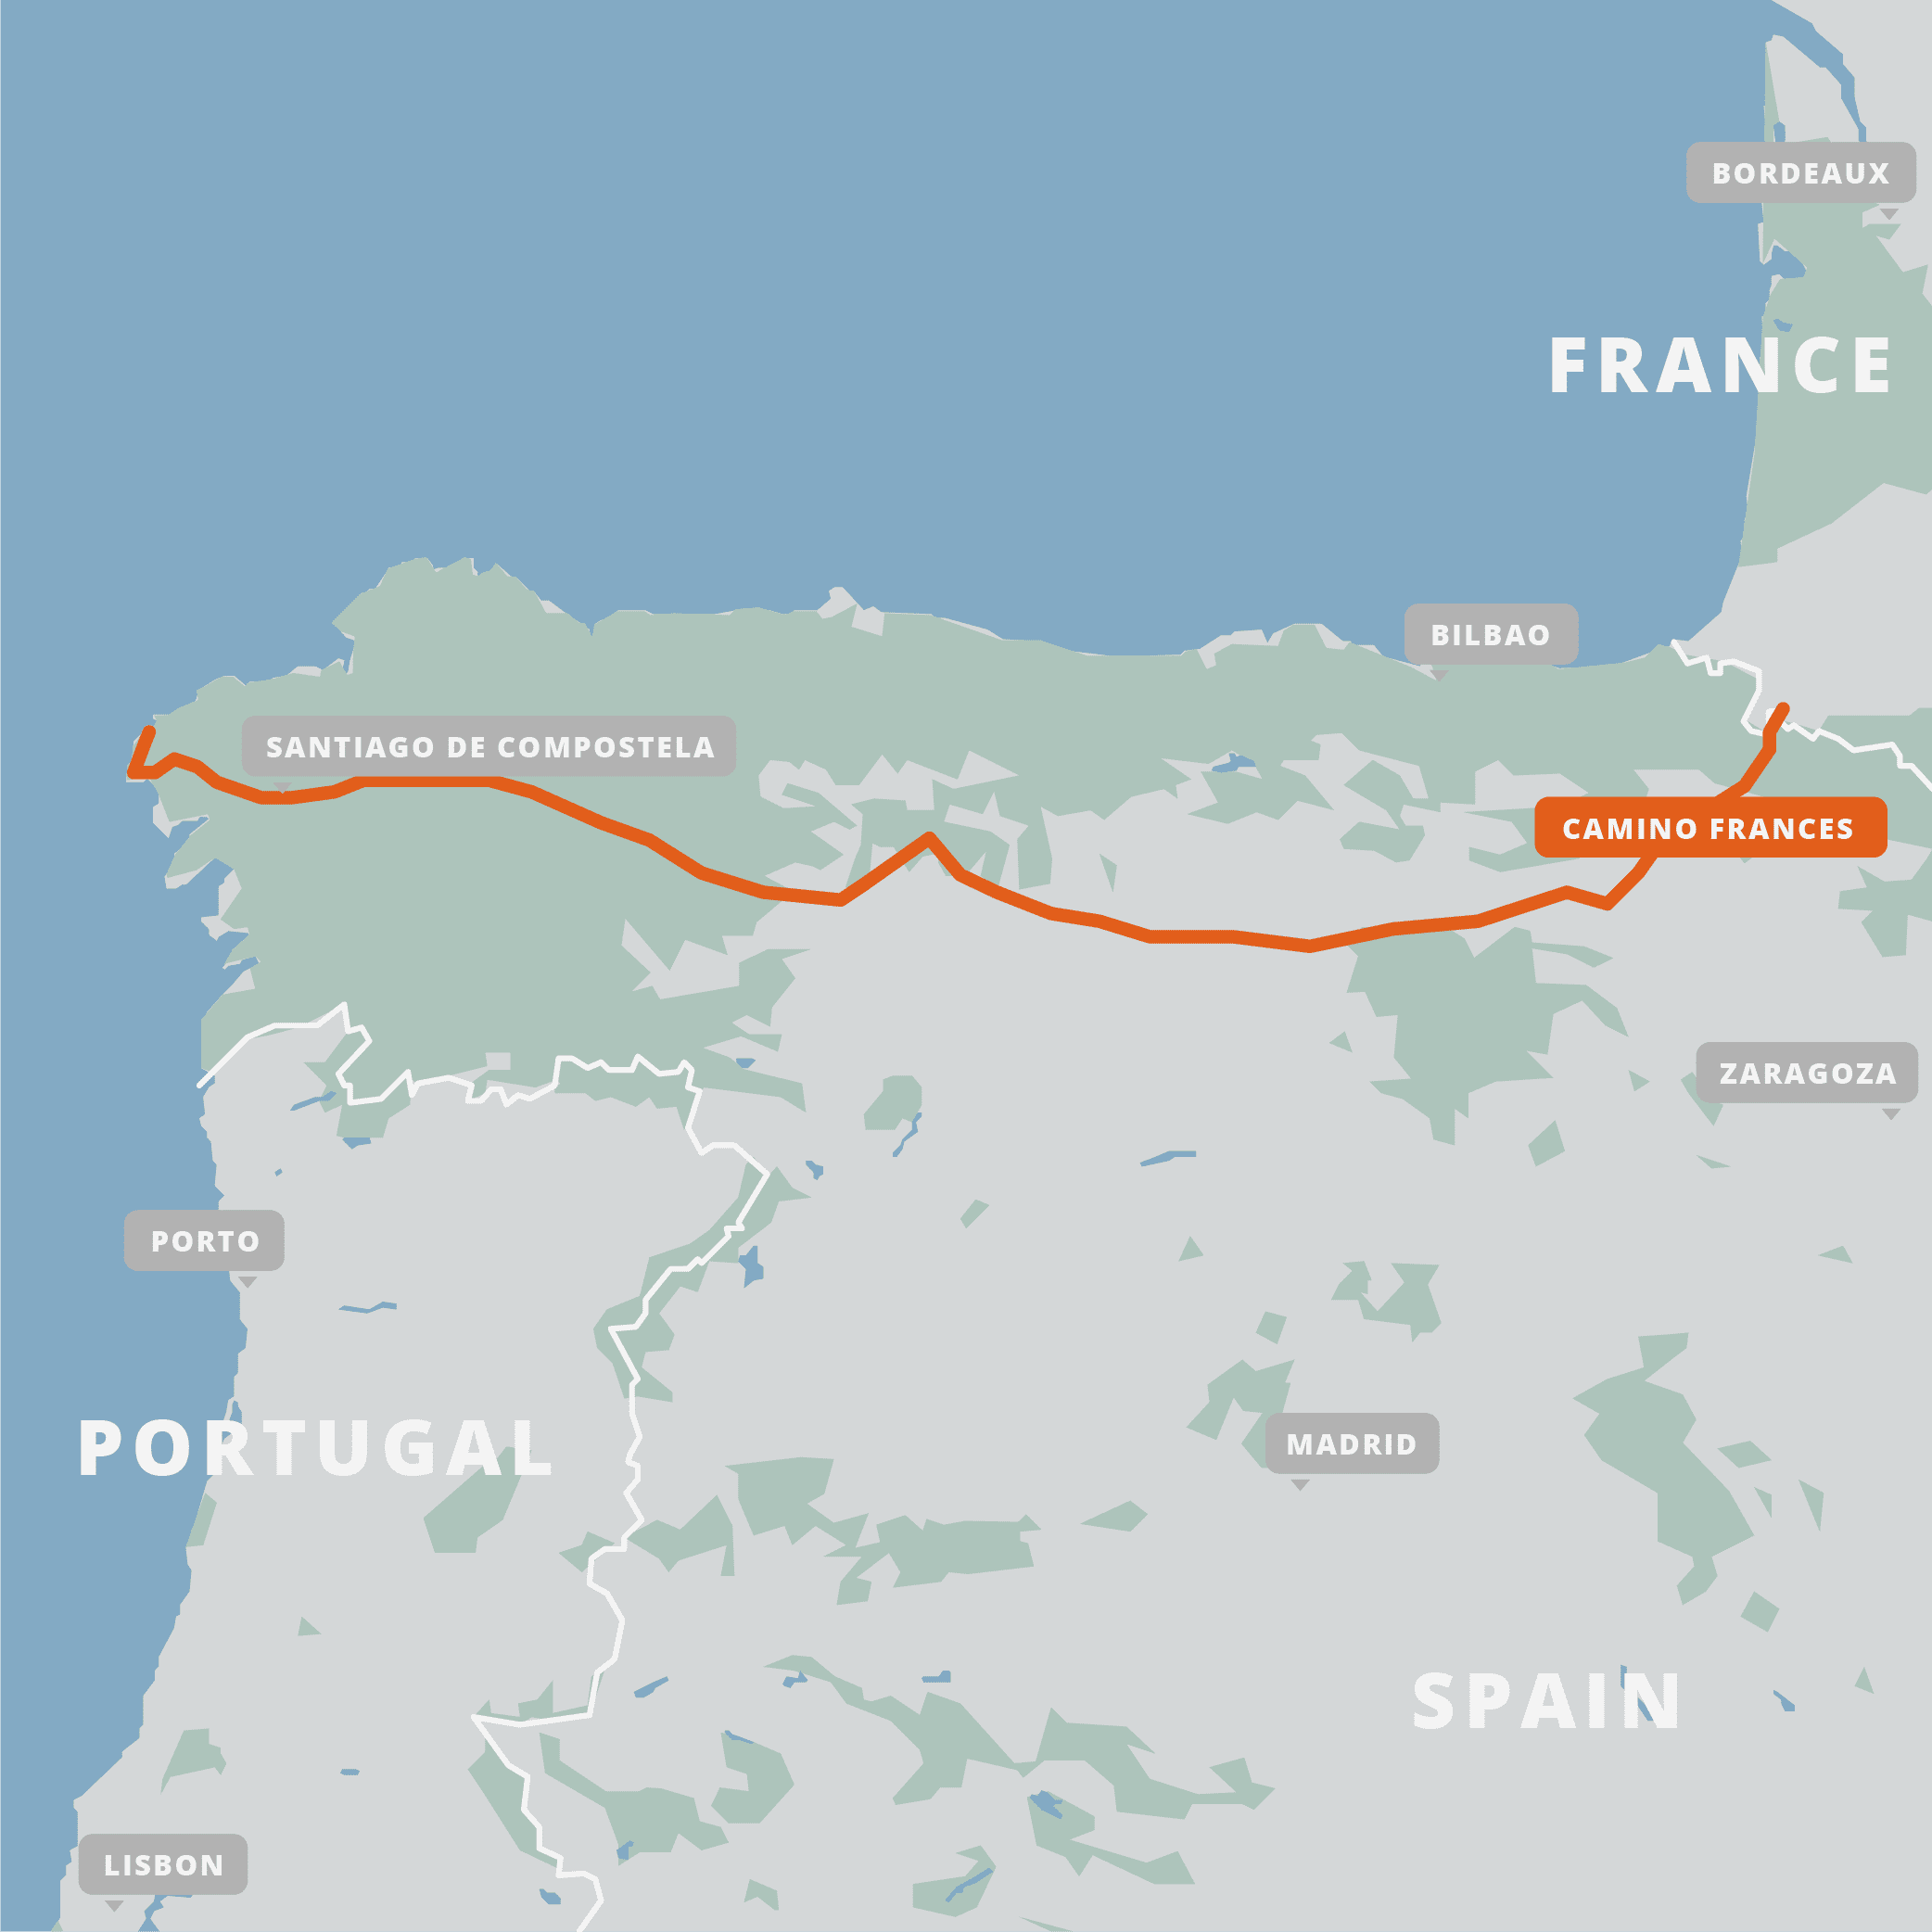 A map of the Camino Frances.